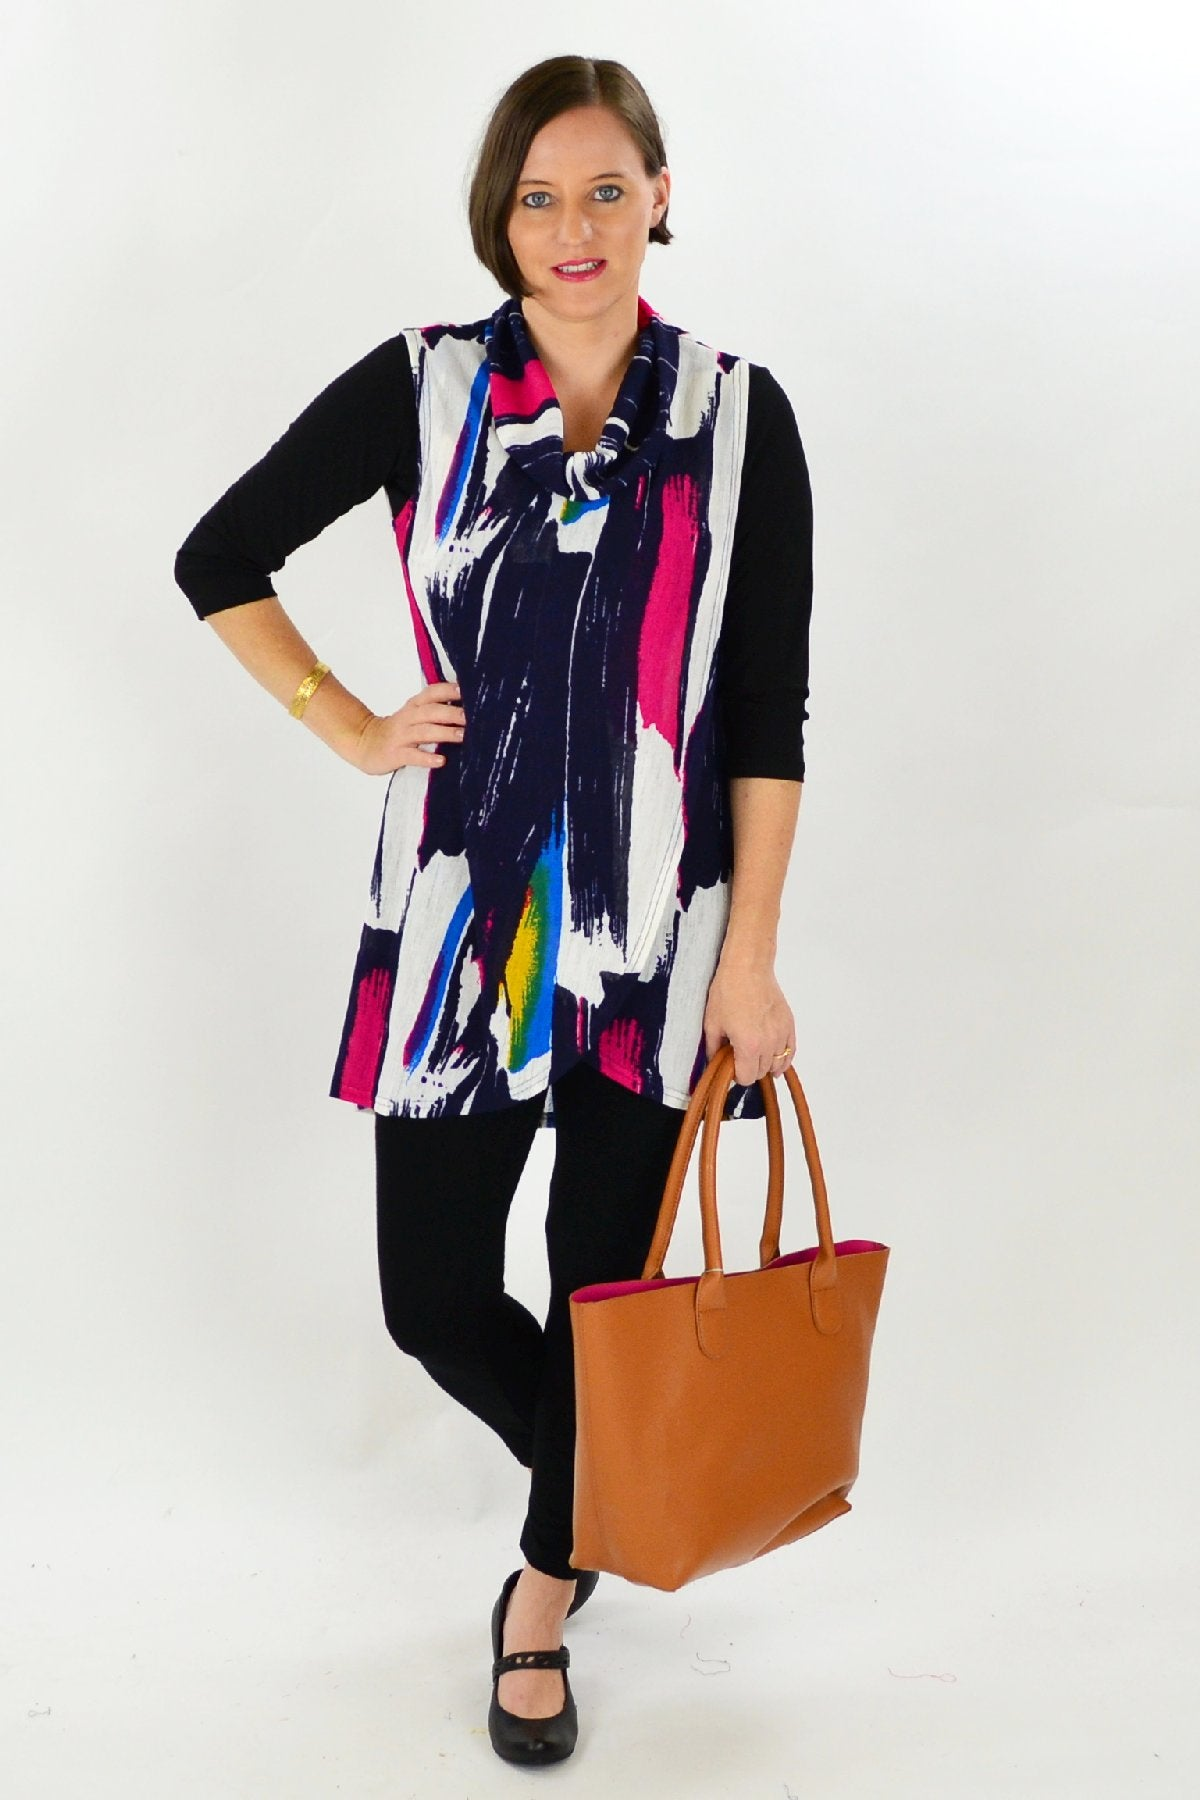 Charmaine Tunic | I Love Tunics | Tunic Tops | Tunic Dresses | Women's Tops | Plus Size Australia | Mature Fashion